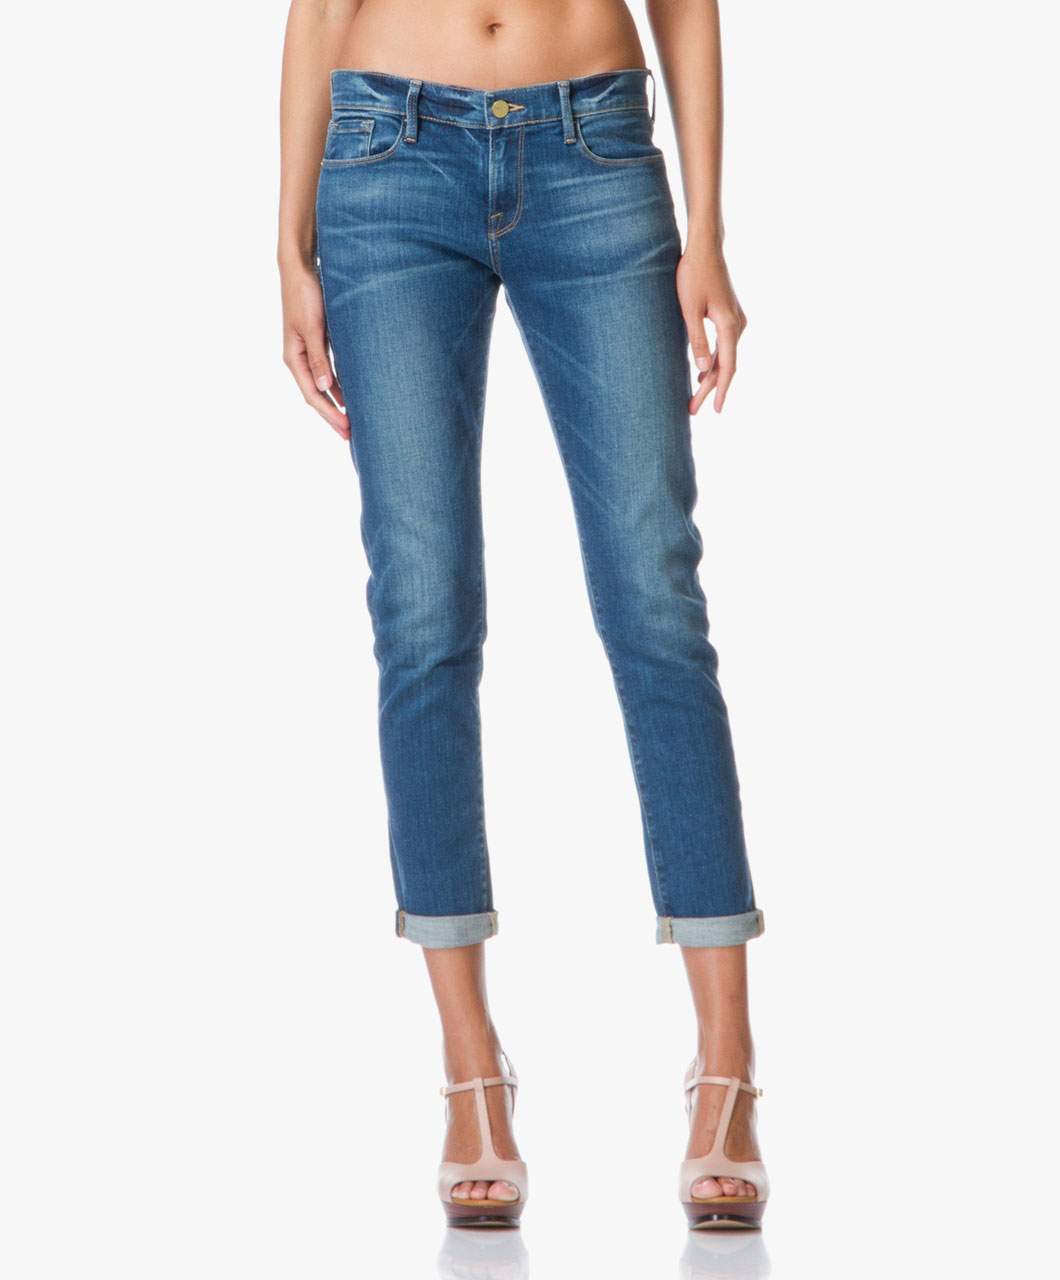 Admirable Frame Denim Le Garcon | Incredible Gap Slouchy Skinny Jeans